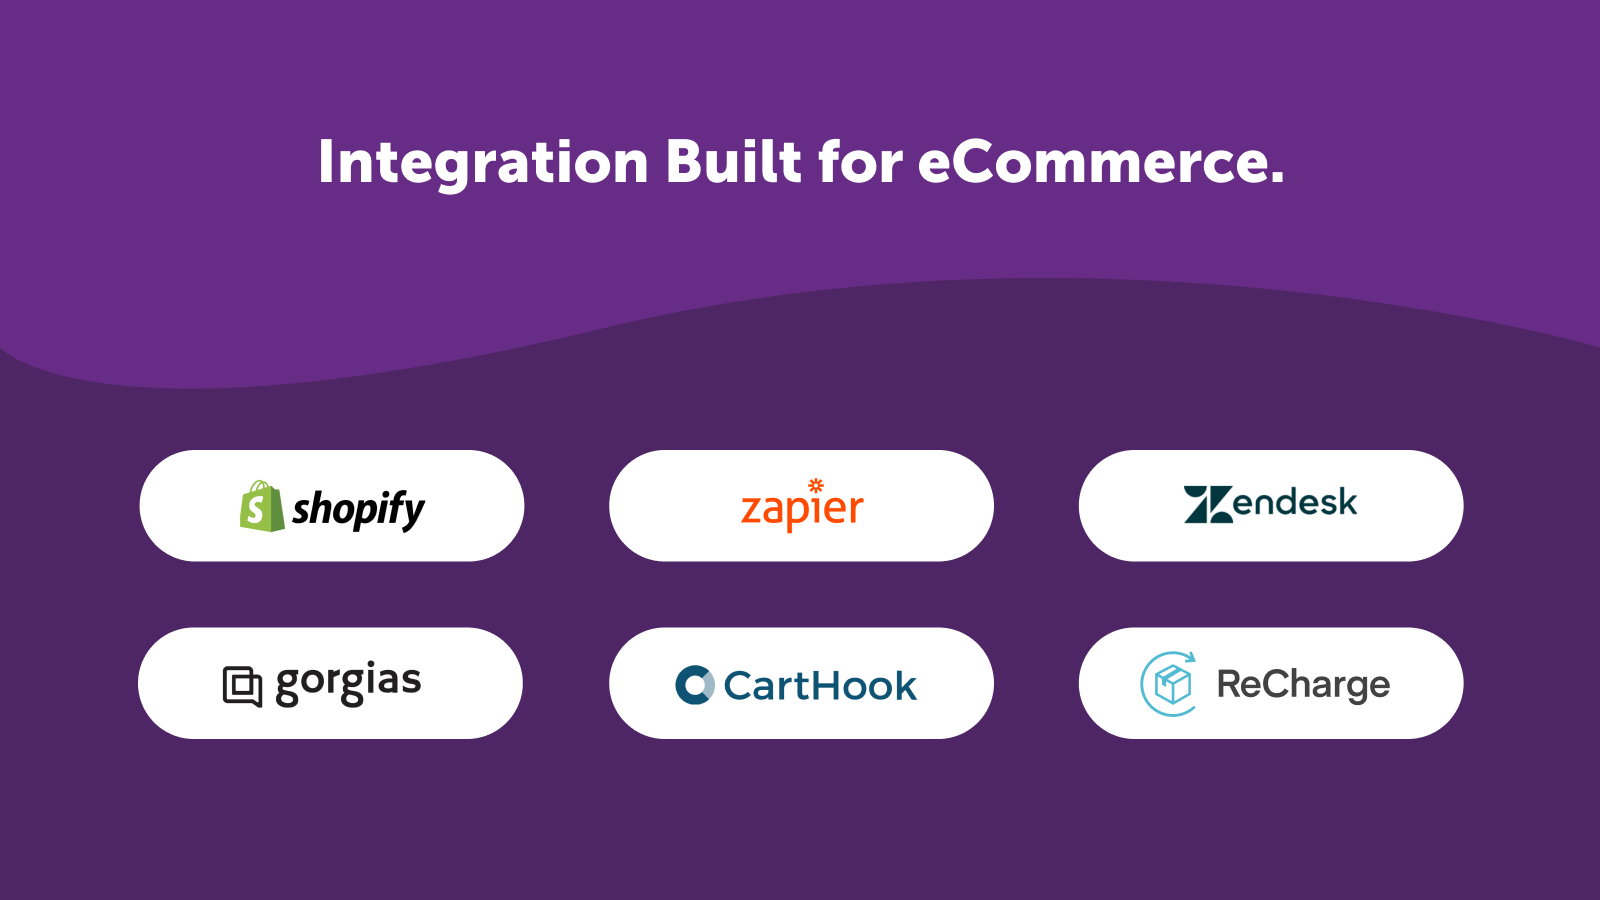 We integrate with your tech stack in just a few clicks